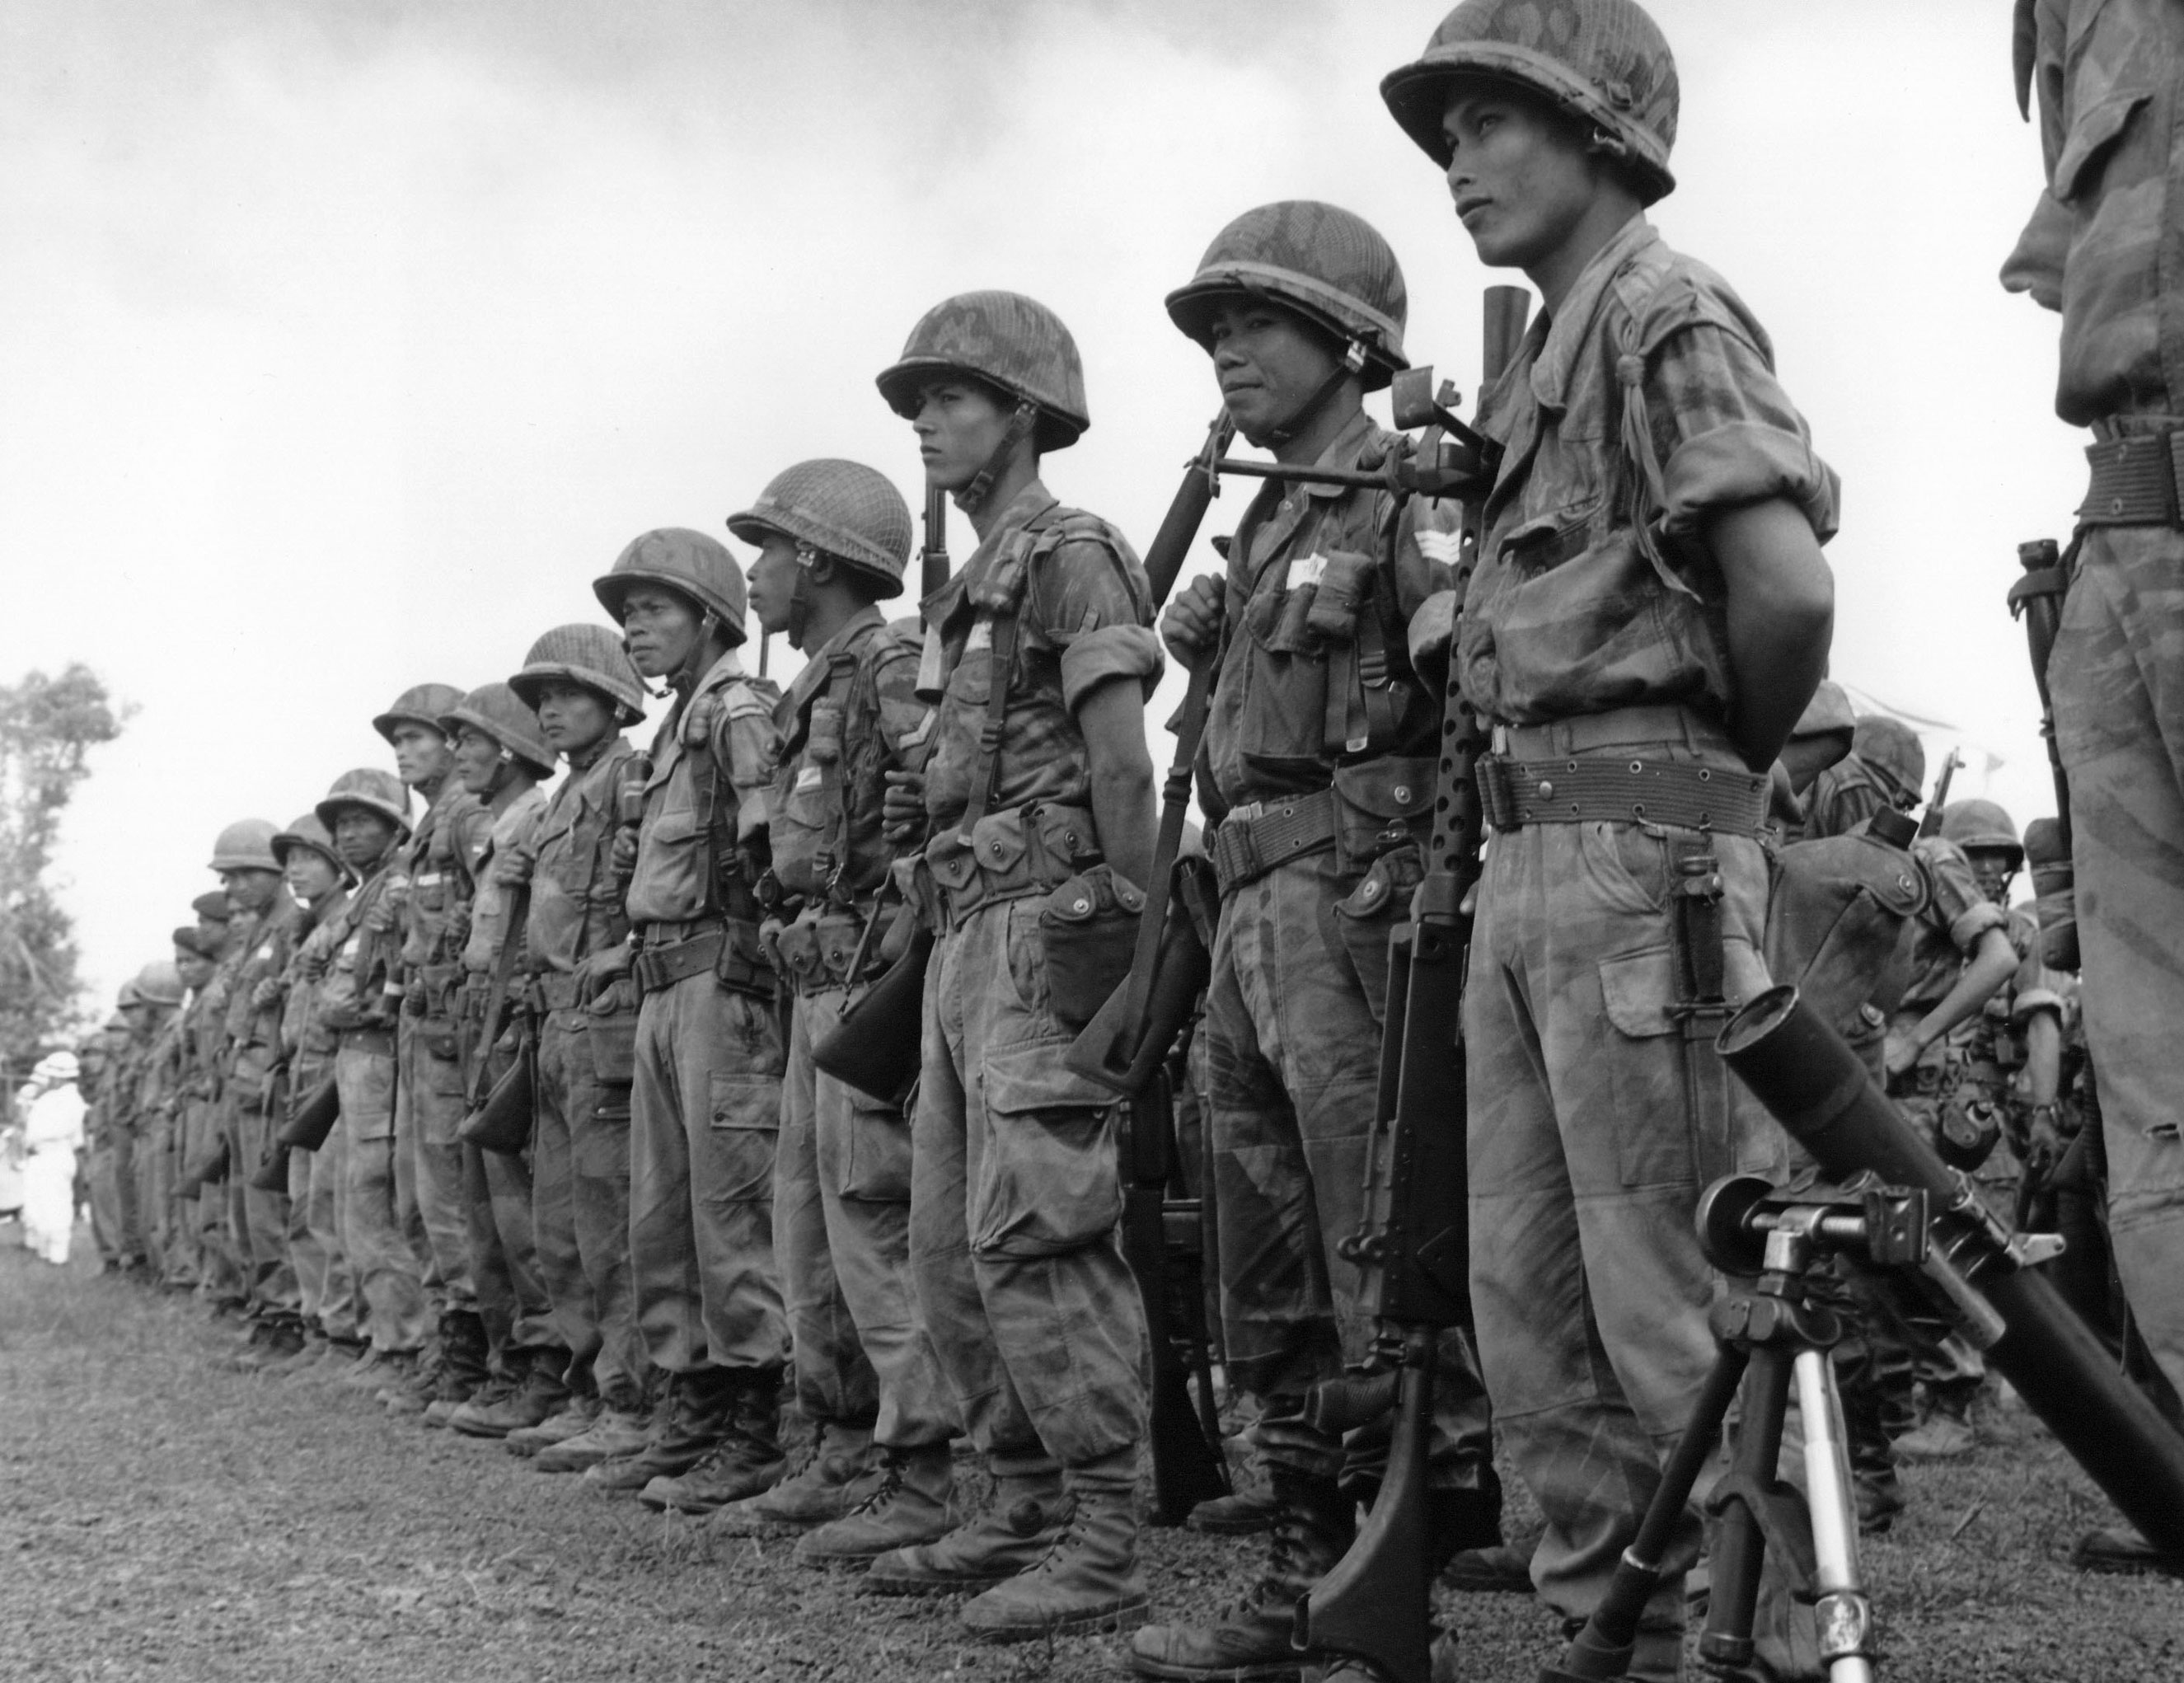 South Vietnamese government troops at Moc Hoa village some 60 miles Southwest of Saigon after a second major victory over Viet Cong rebels on Aug. 24, 1961.